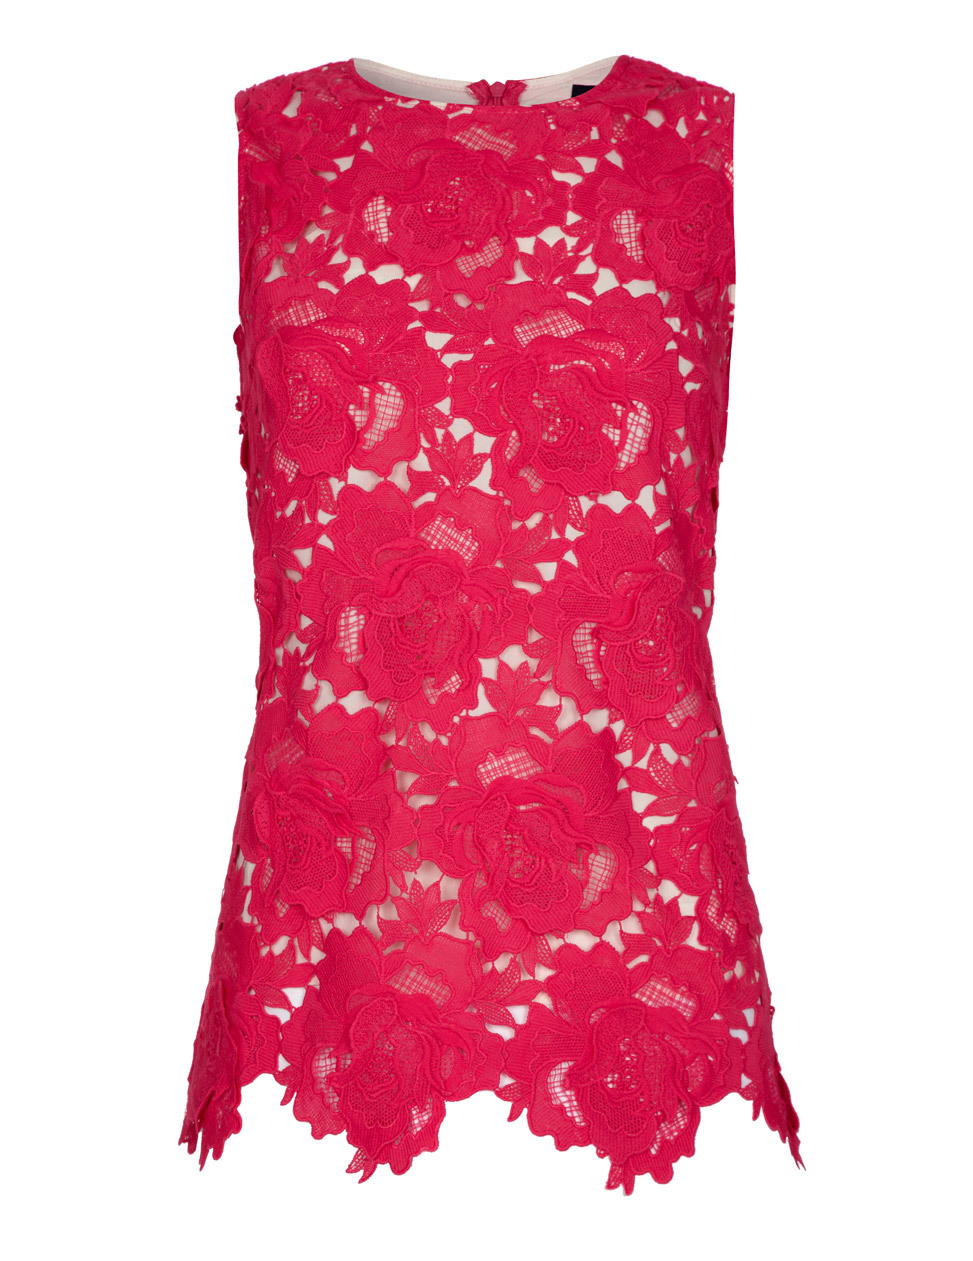 Kassy Fuschia Embroidered Crochet Sleeveless Vest Top - neckline: round neck; pattern: plain; sleeve style: sleeveless; predominant colour: hot pink; occasions: casual; length: standard; style: top; fibres: polyester/polyamide - stretch; fit: tailored/fitted; sleeve length: sleeveless; texture group: lace; pattern type: fabric; season: s/s 2015